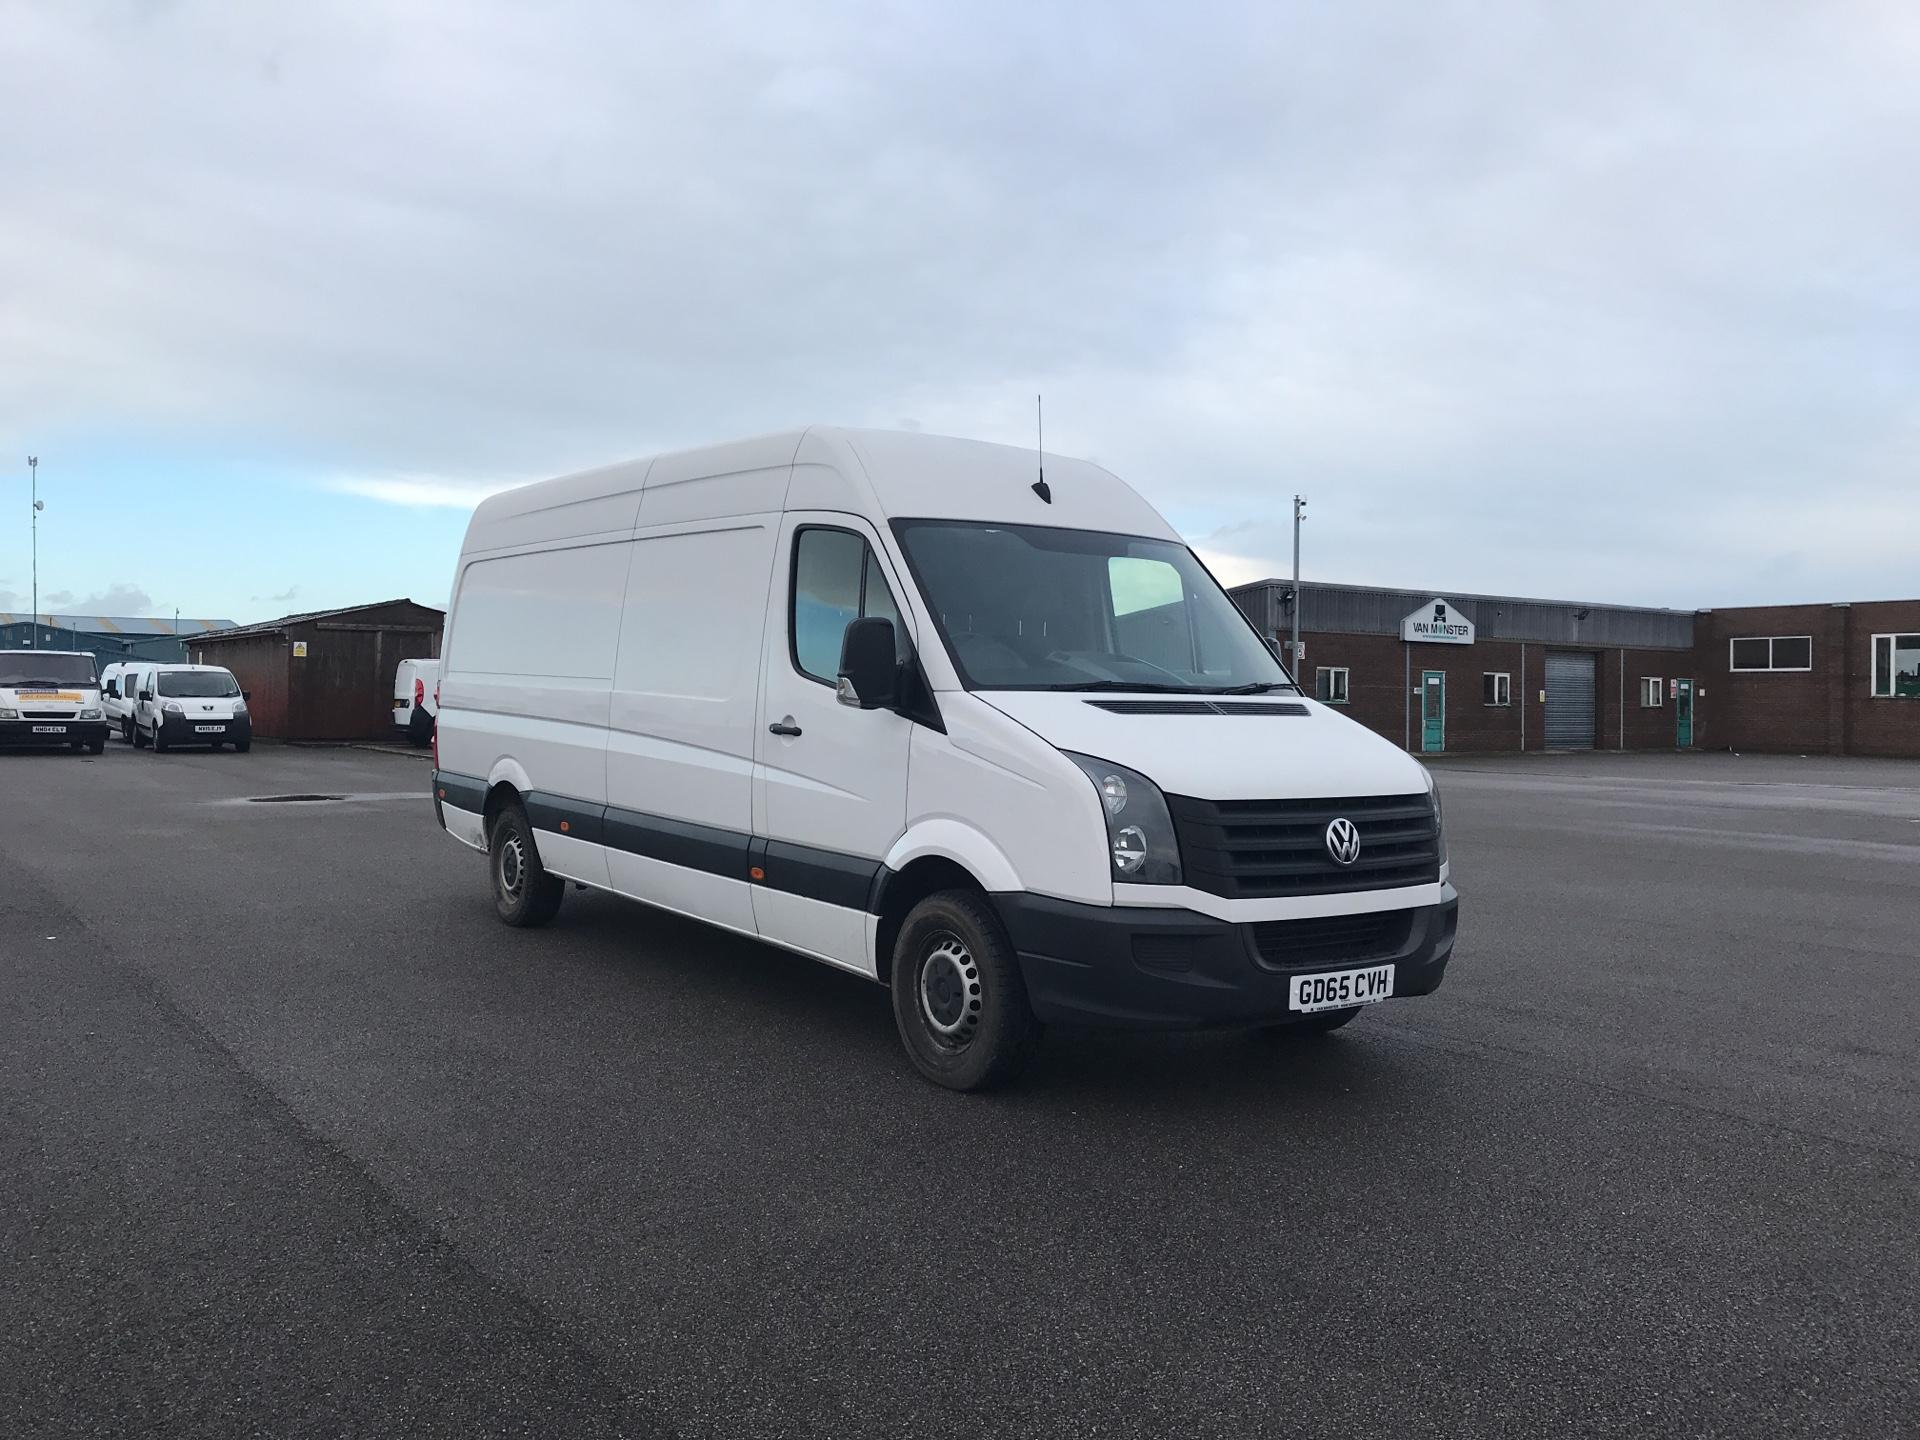 2015 Volkswagen Crafter CR35 L3 H3 2.0 TDI 136PS EURO 5 (GD65CVH)